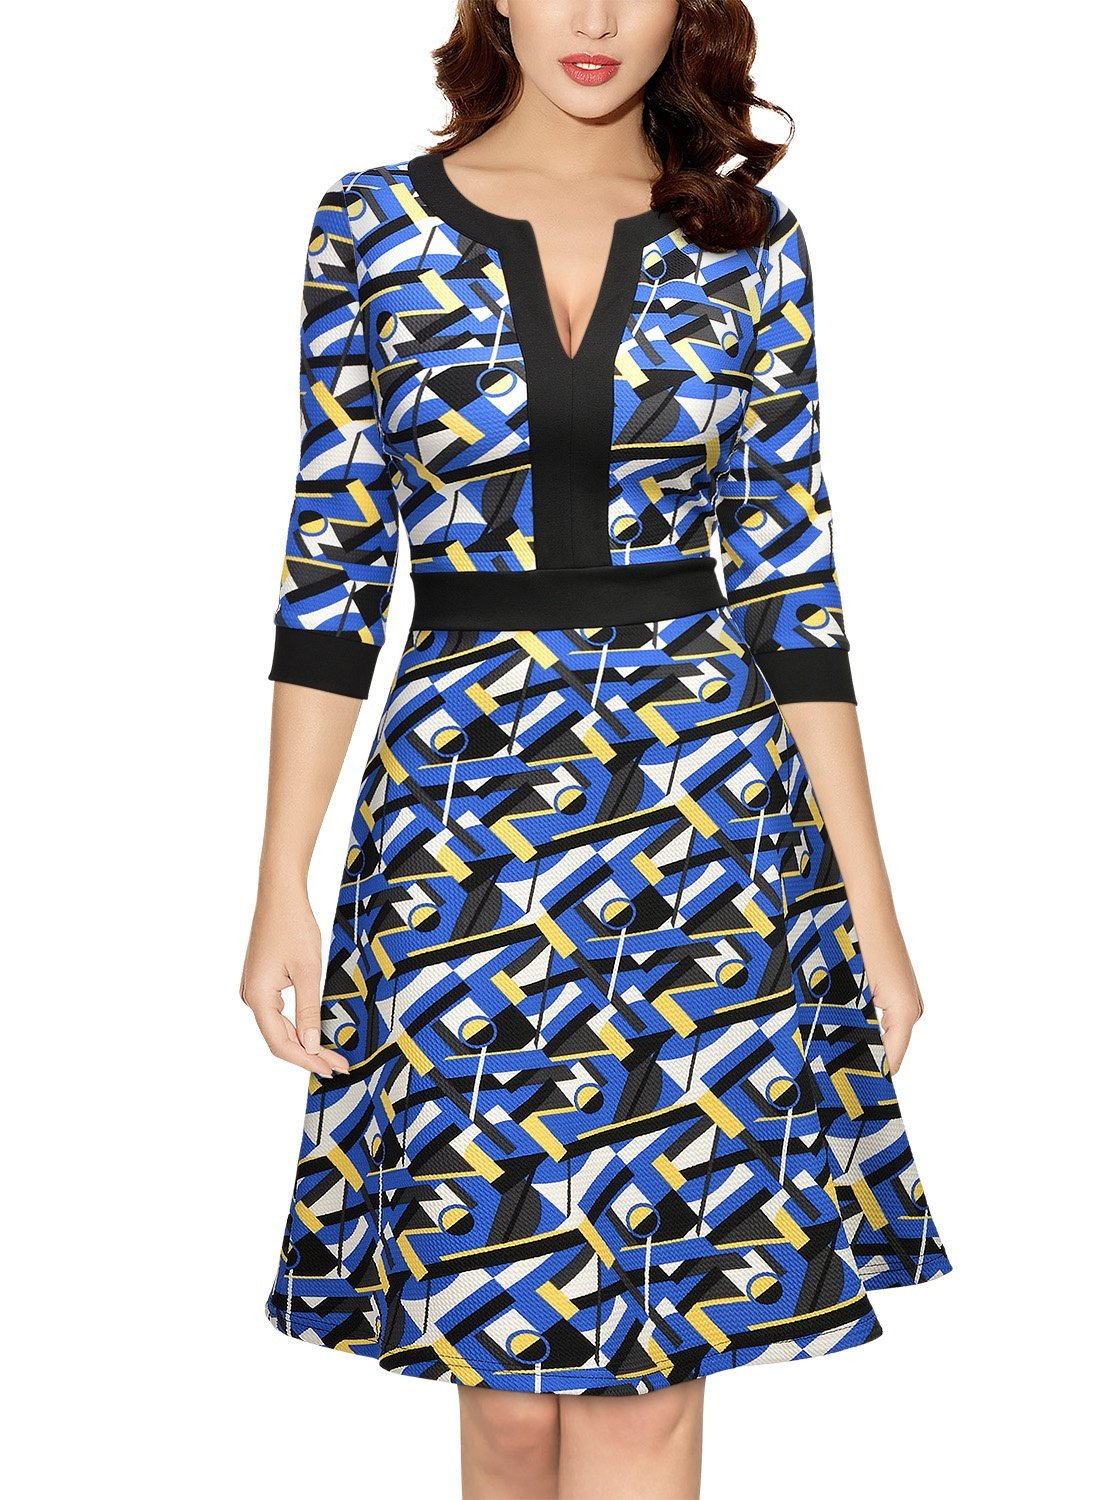 Women's Formal Optical Illusion Retro Business A-Line Dress